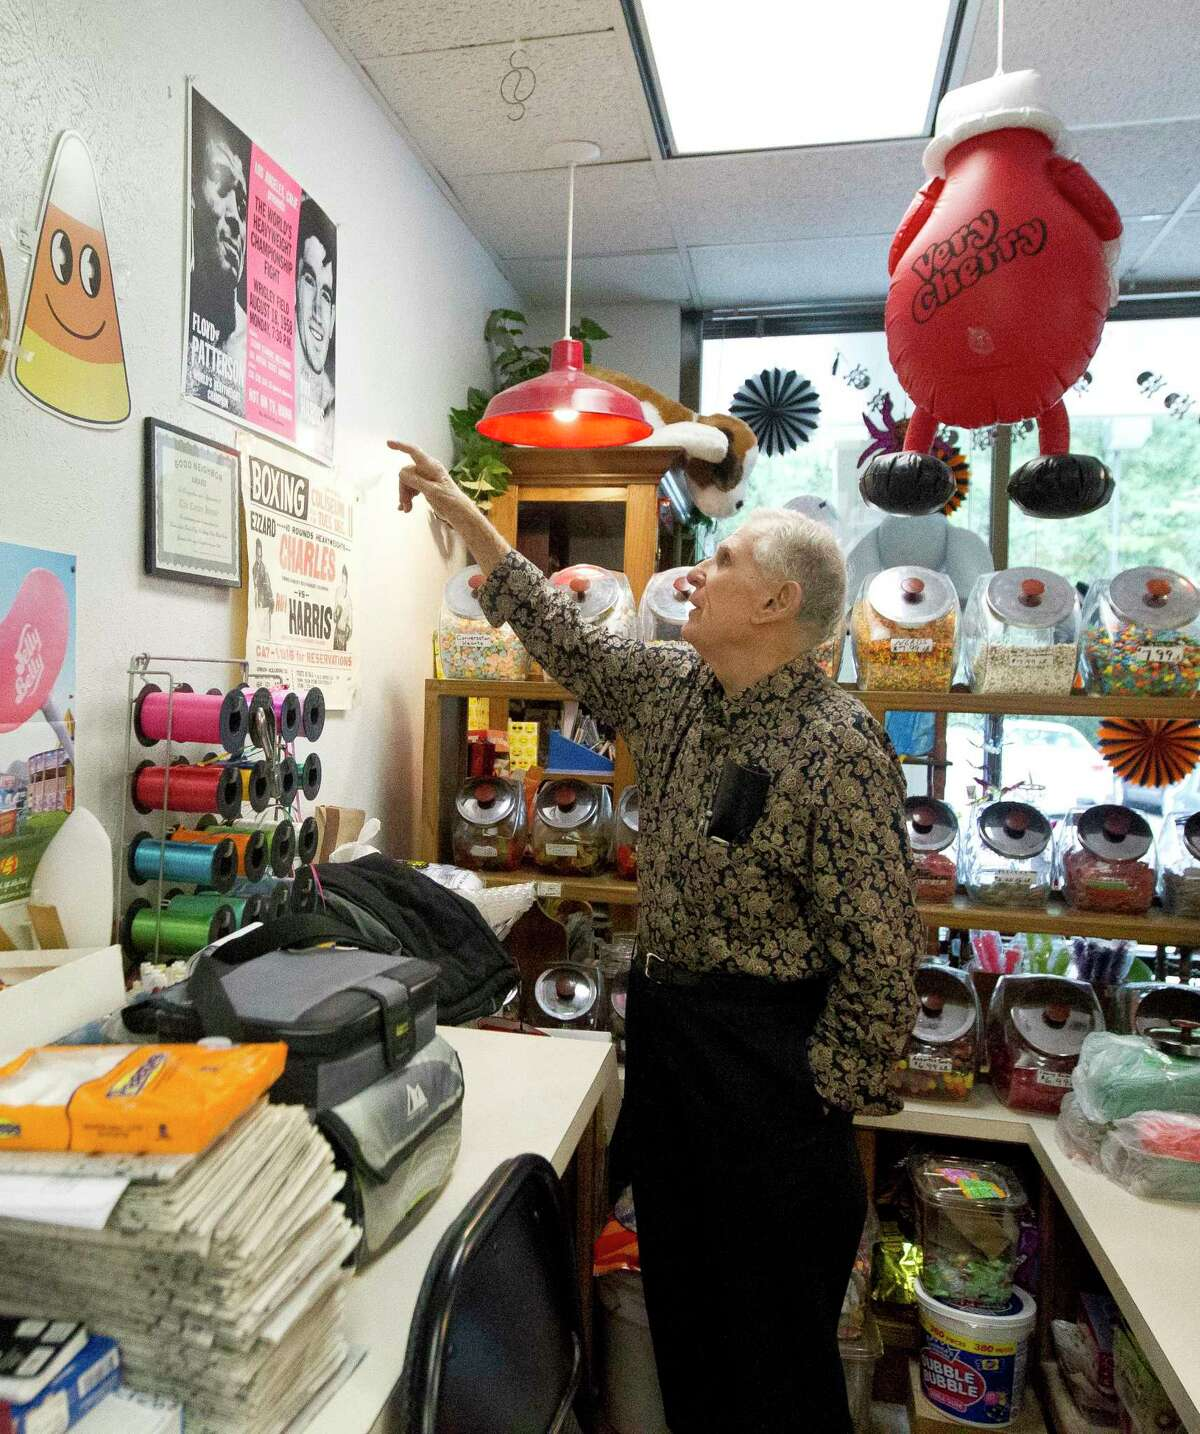 Donald Baker, 88, points out autographed posters of retired heavyweight boxer Roy Harris that hang in The Candy House on Glen Loch Drive, Wednesday, Oct. 30, 2019, in Spring. The Cut and Shoot resident and his family have occasionally visited the store Baker and his wife have owned for more than 20 years. Baker died Jan. 2 at age 89.